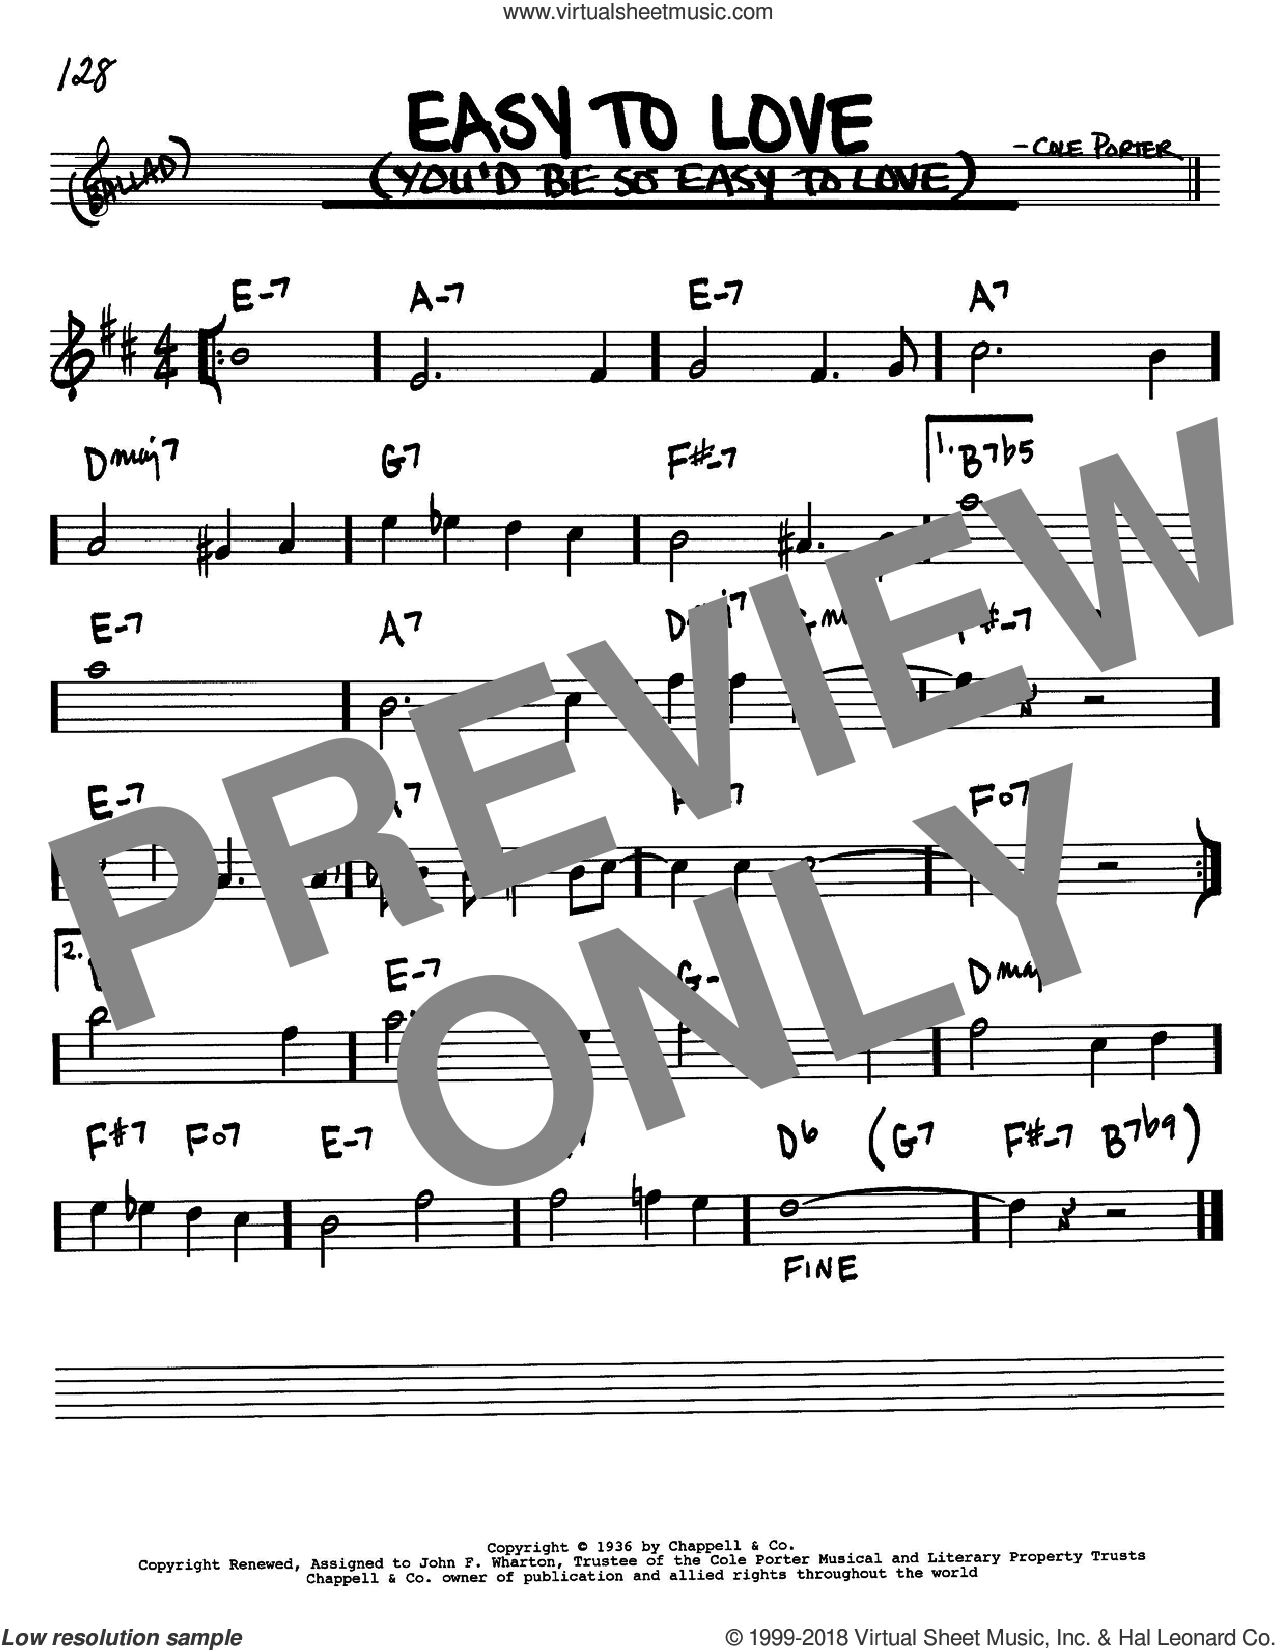 Easy To Love (You'd Be So Easy To Love) sheet music for voice and other instruments (Bb) by Cole Porter